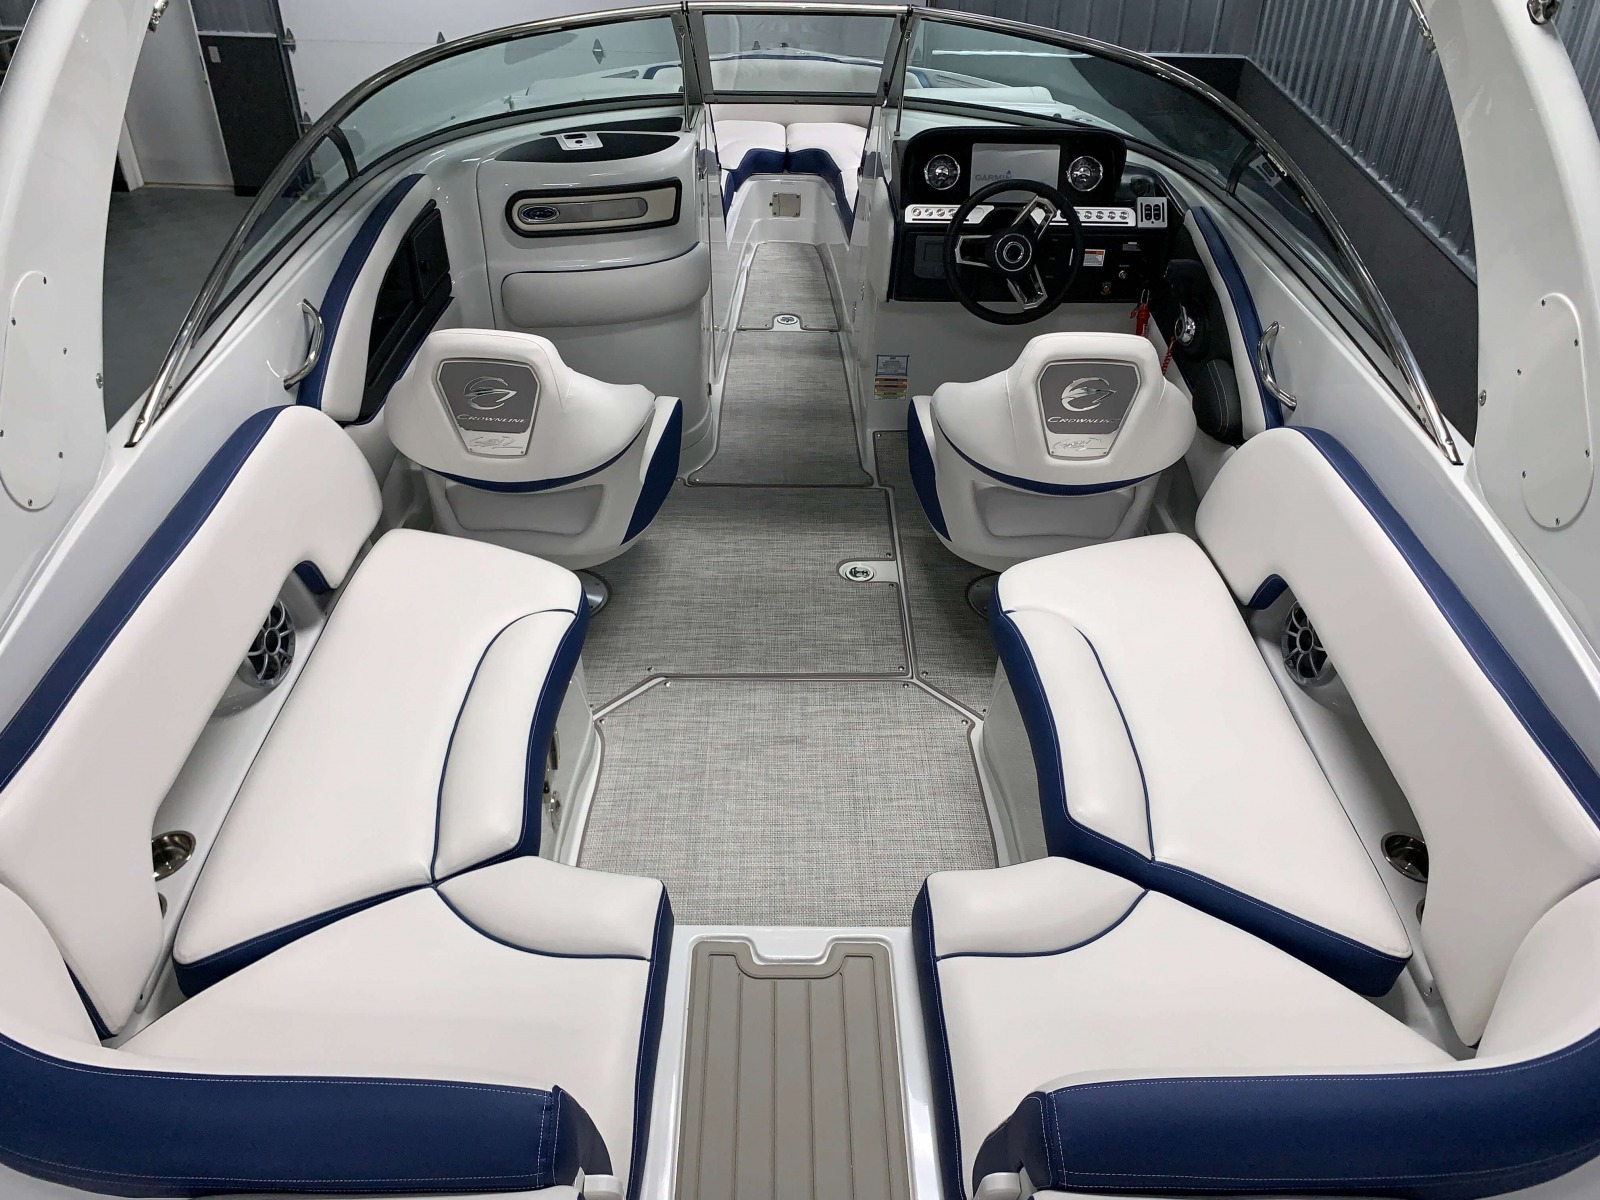 Interior Cockpit Layout of the 2021 Crownline 265 SS Bowrider Boat